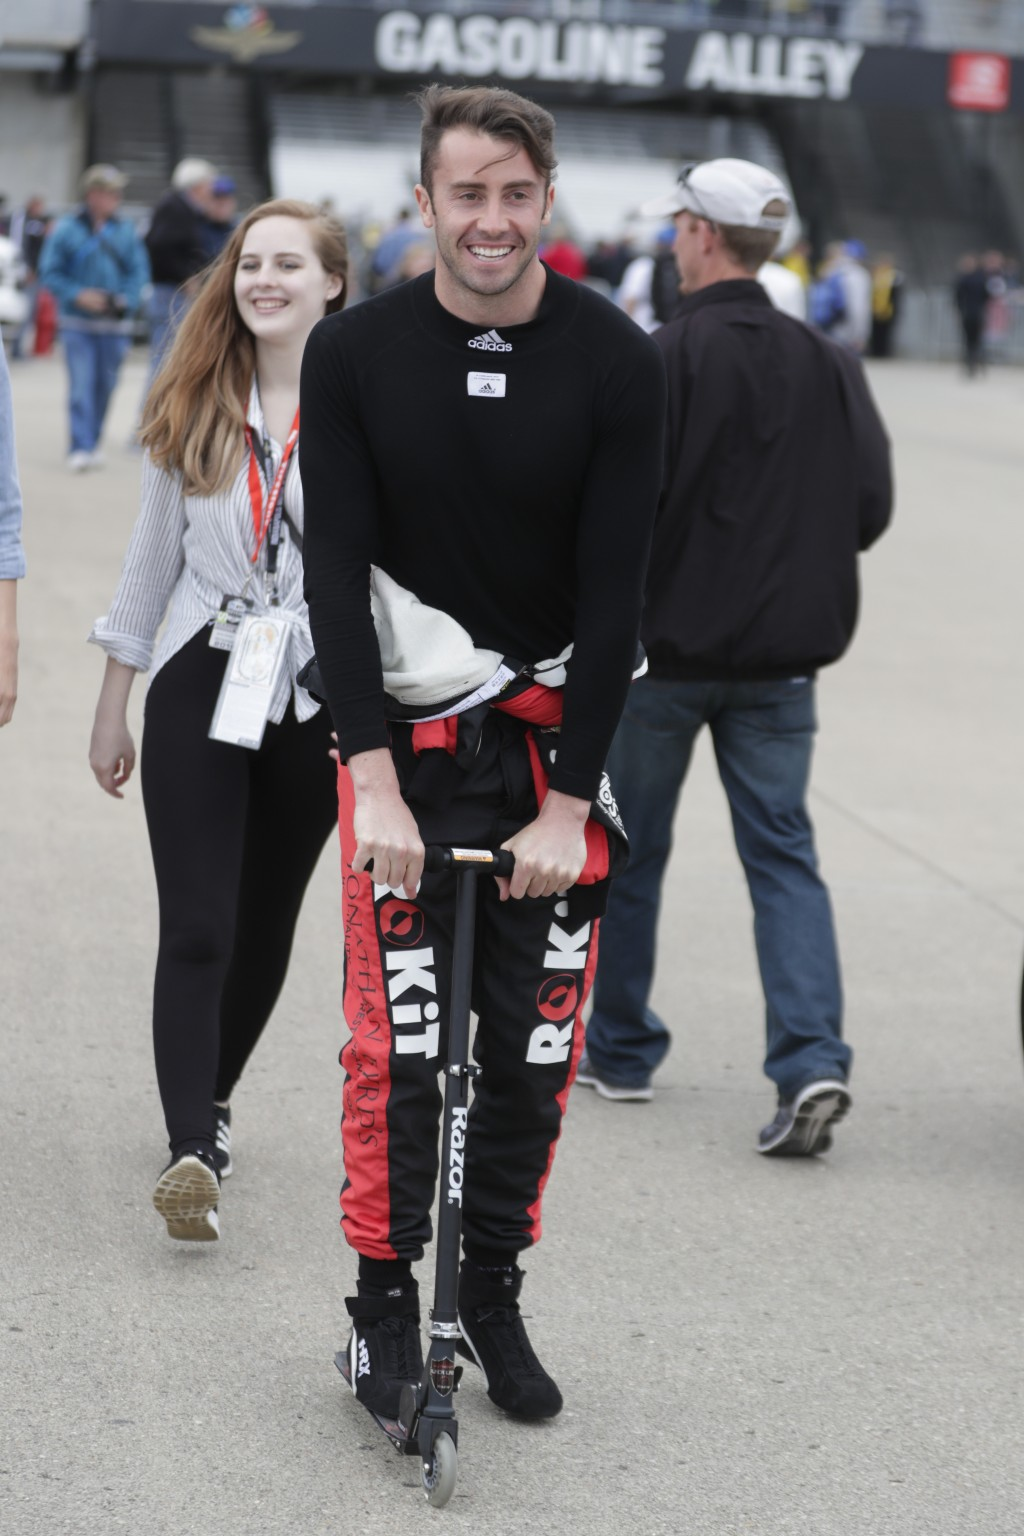 James Davison, of Australia, rides a scooter through the garage area practice for the Indianapolis 500 IndyCar auto race at Indianapolis Motor Speedwa...